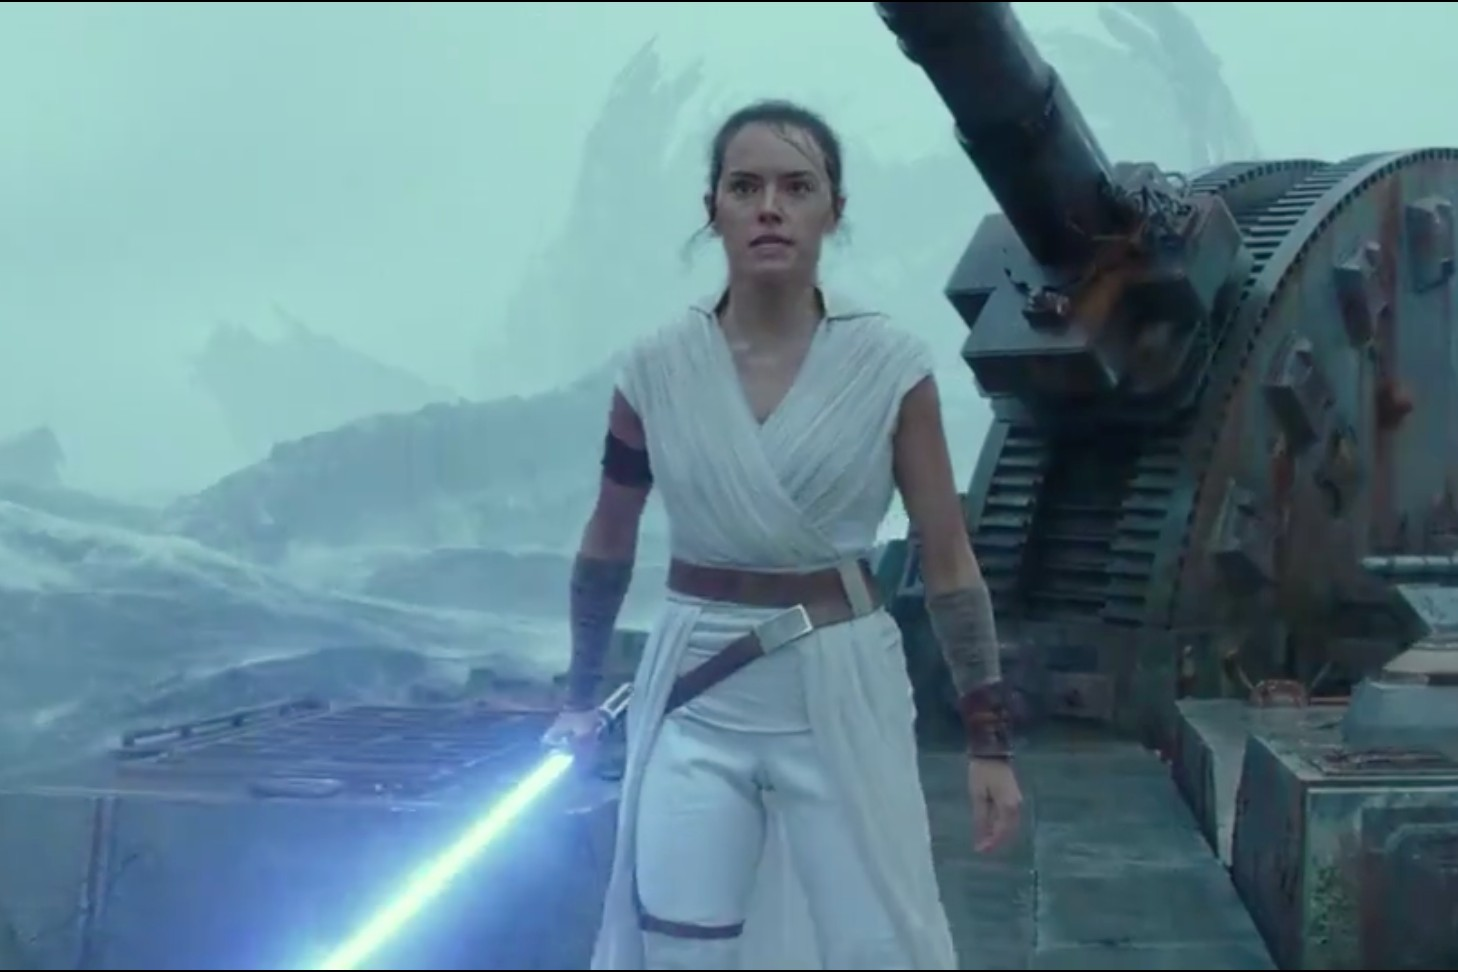 Disney's 'Star Wars: The Rise of Skywalker' trailer airs during ESPN's 'Monday Night Football': Wake-Up Call